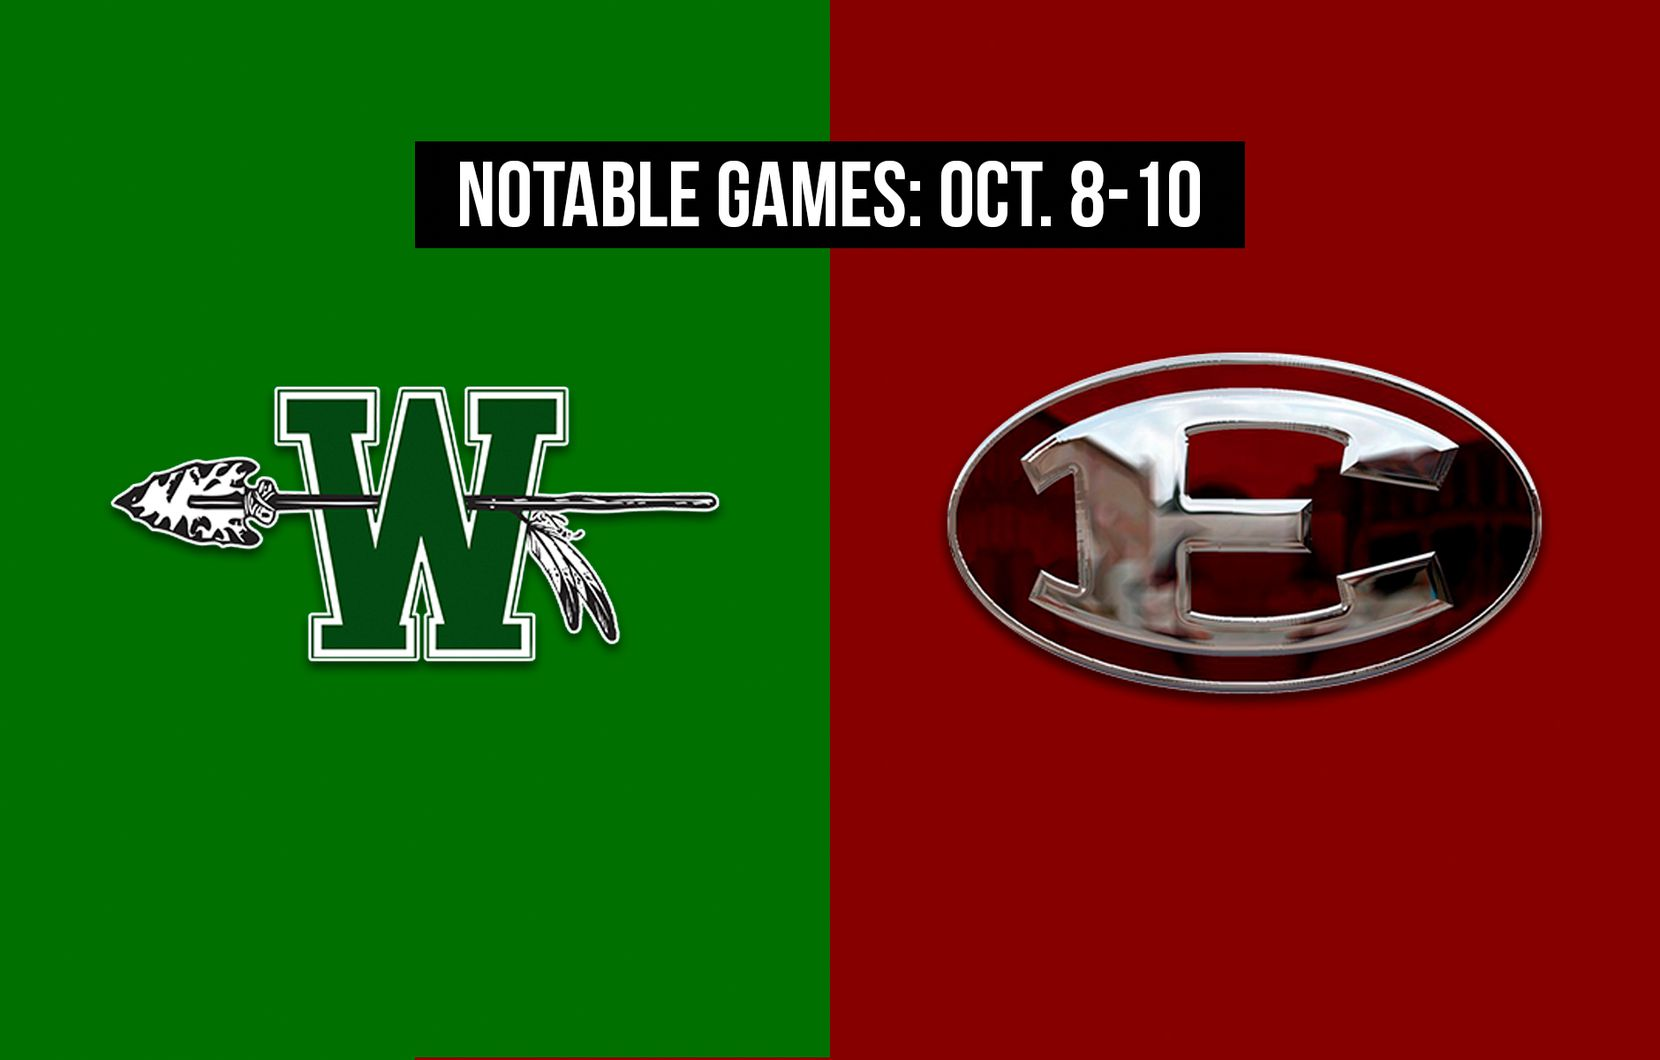 Notable games for the week of Oct. 8-10 of the 2020 season: Waxahachie vs. Ennis.